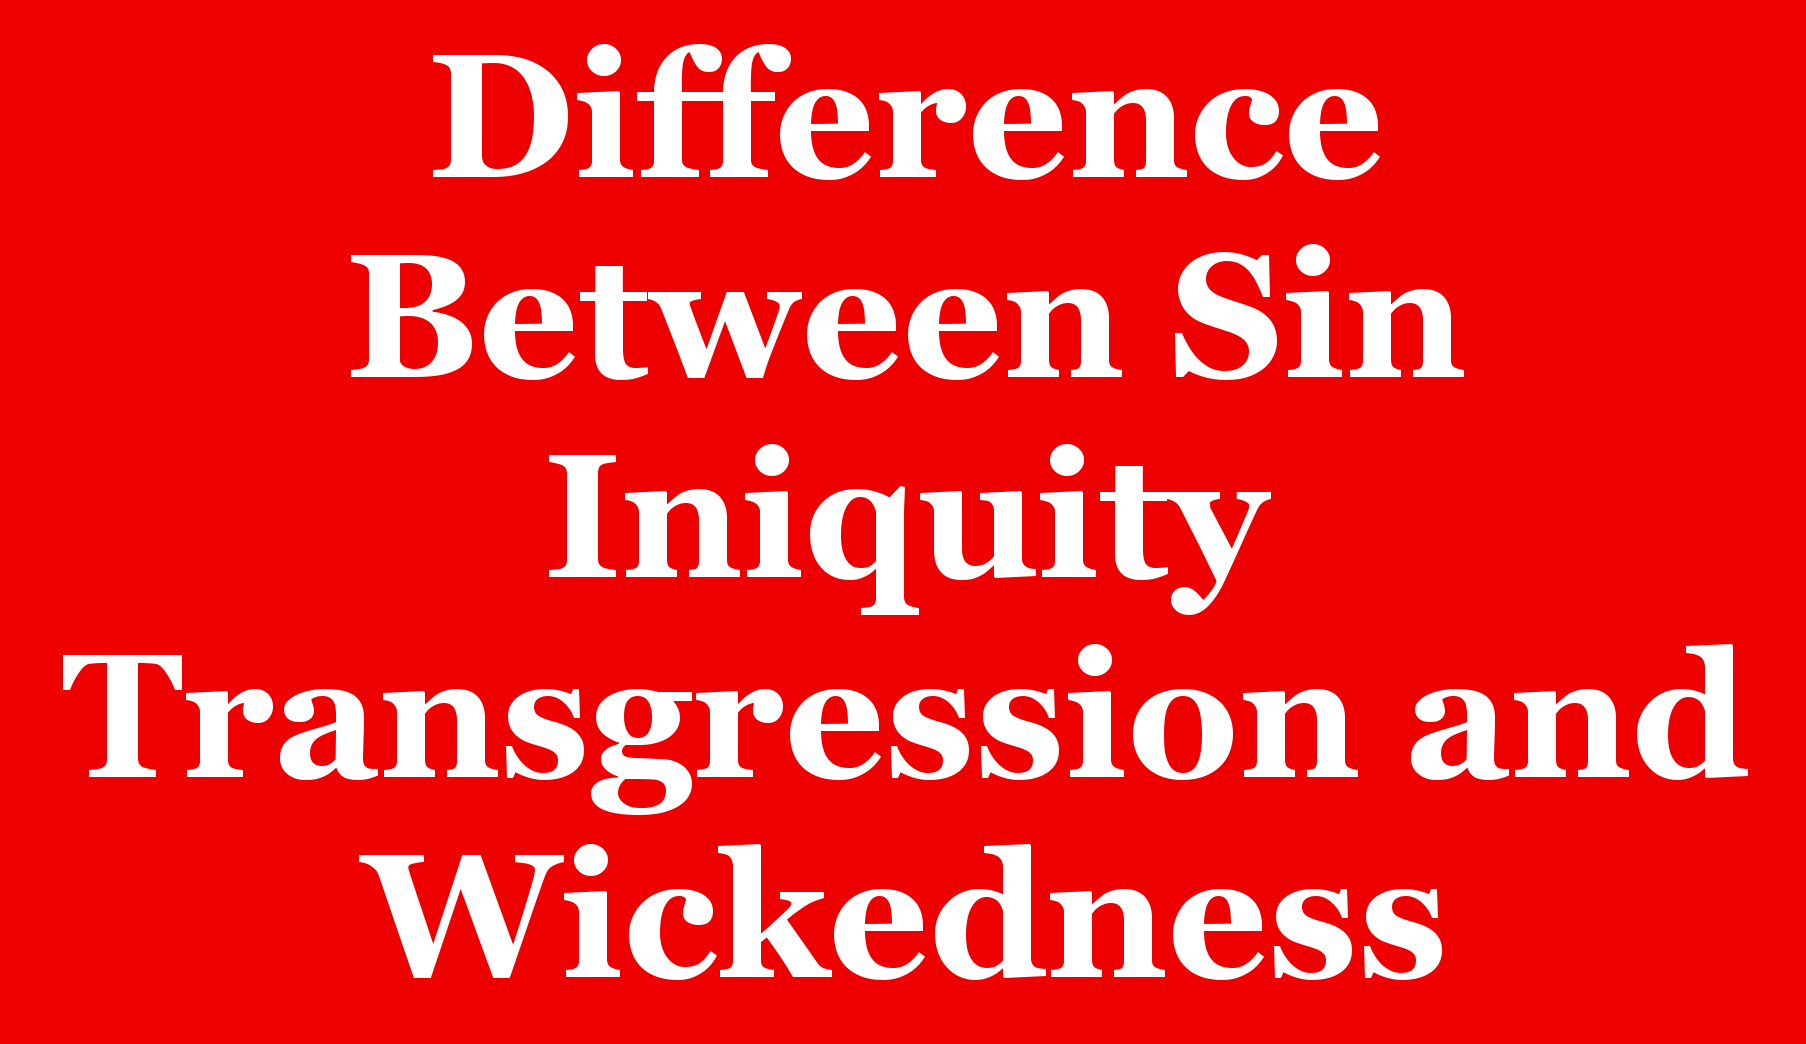 difference between sin iniquity transgression and wickedness